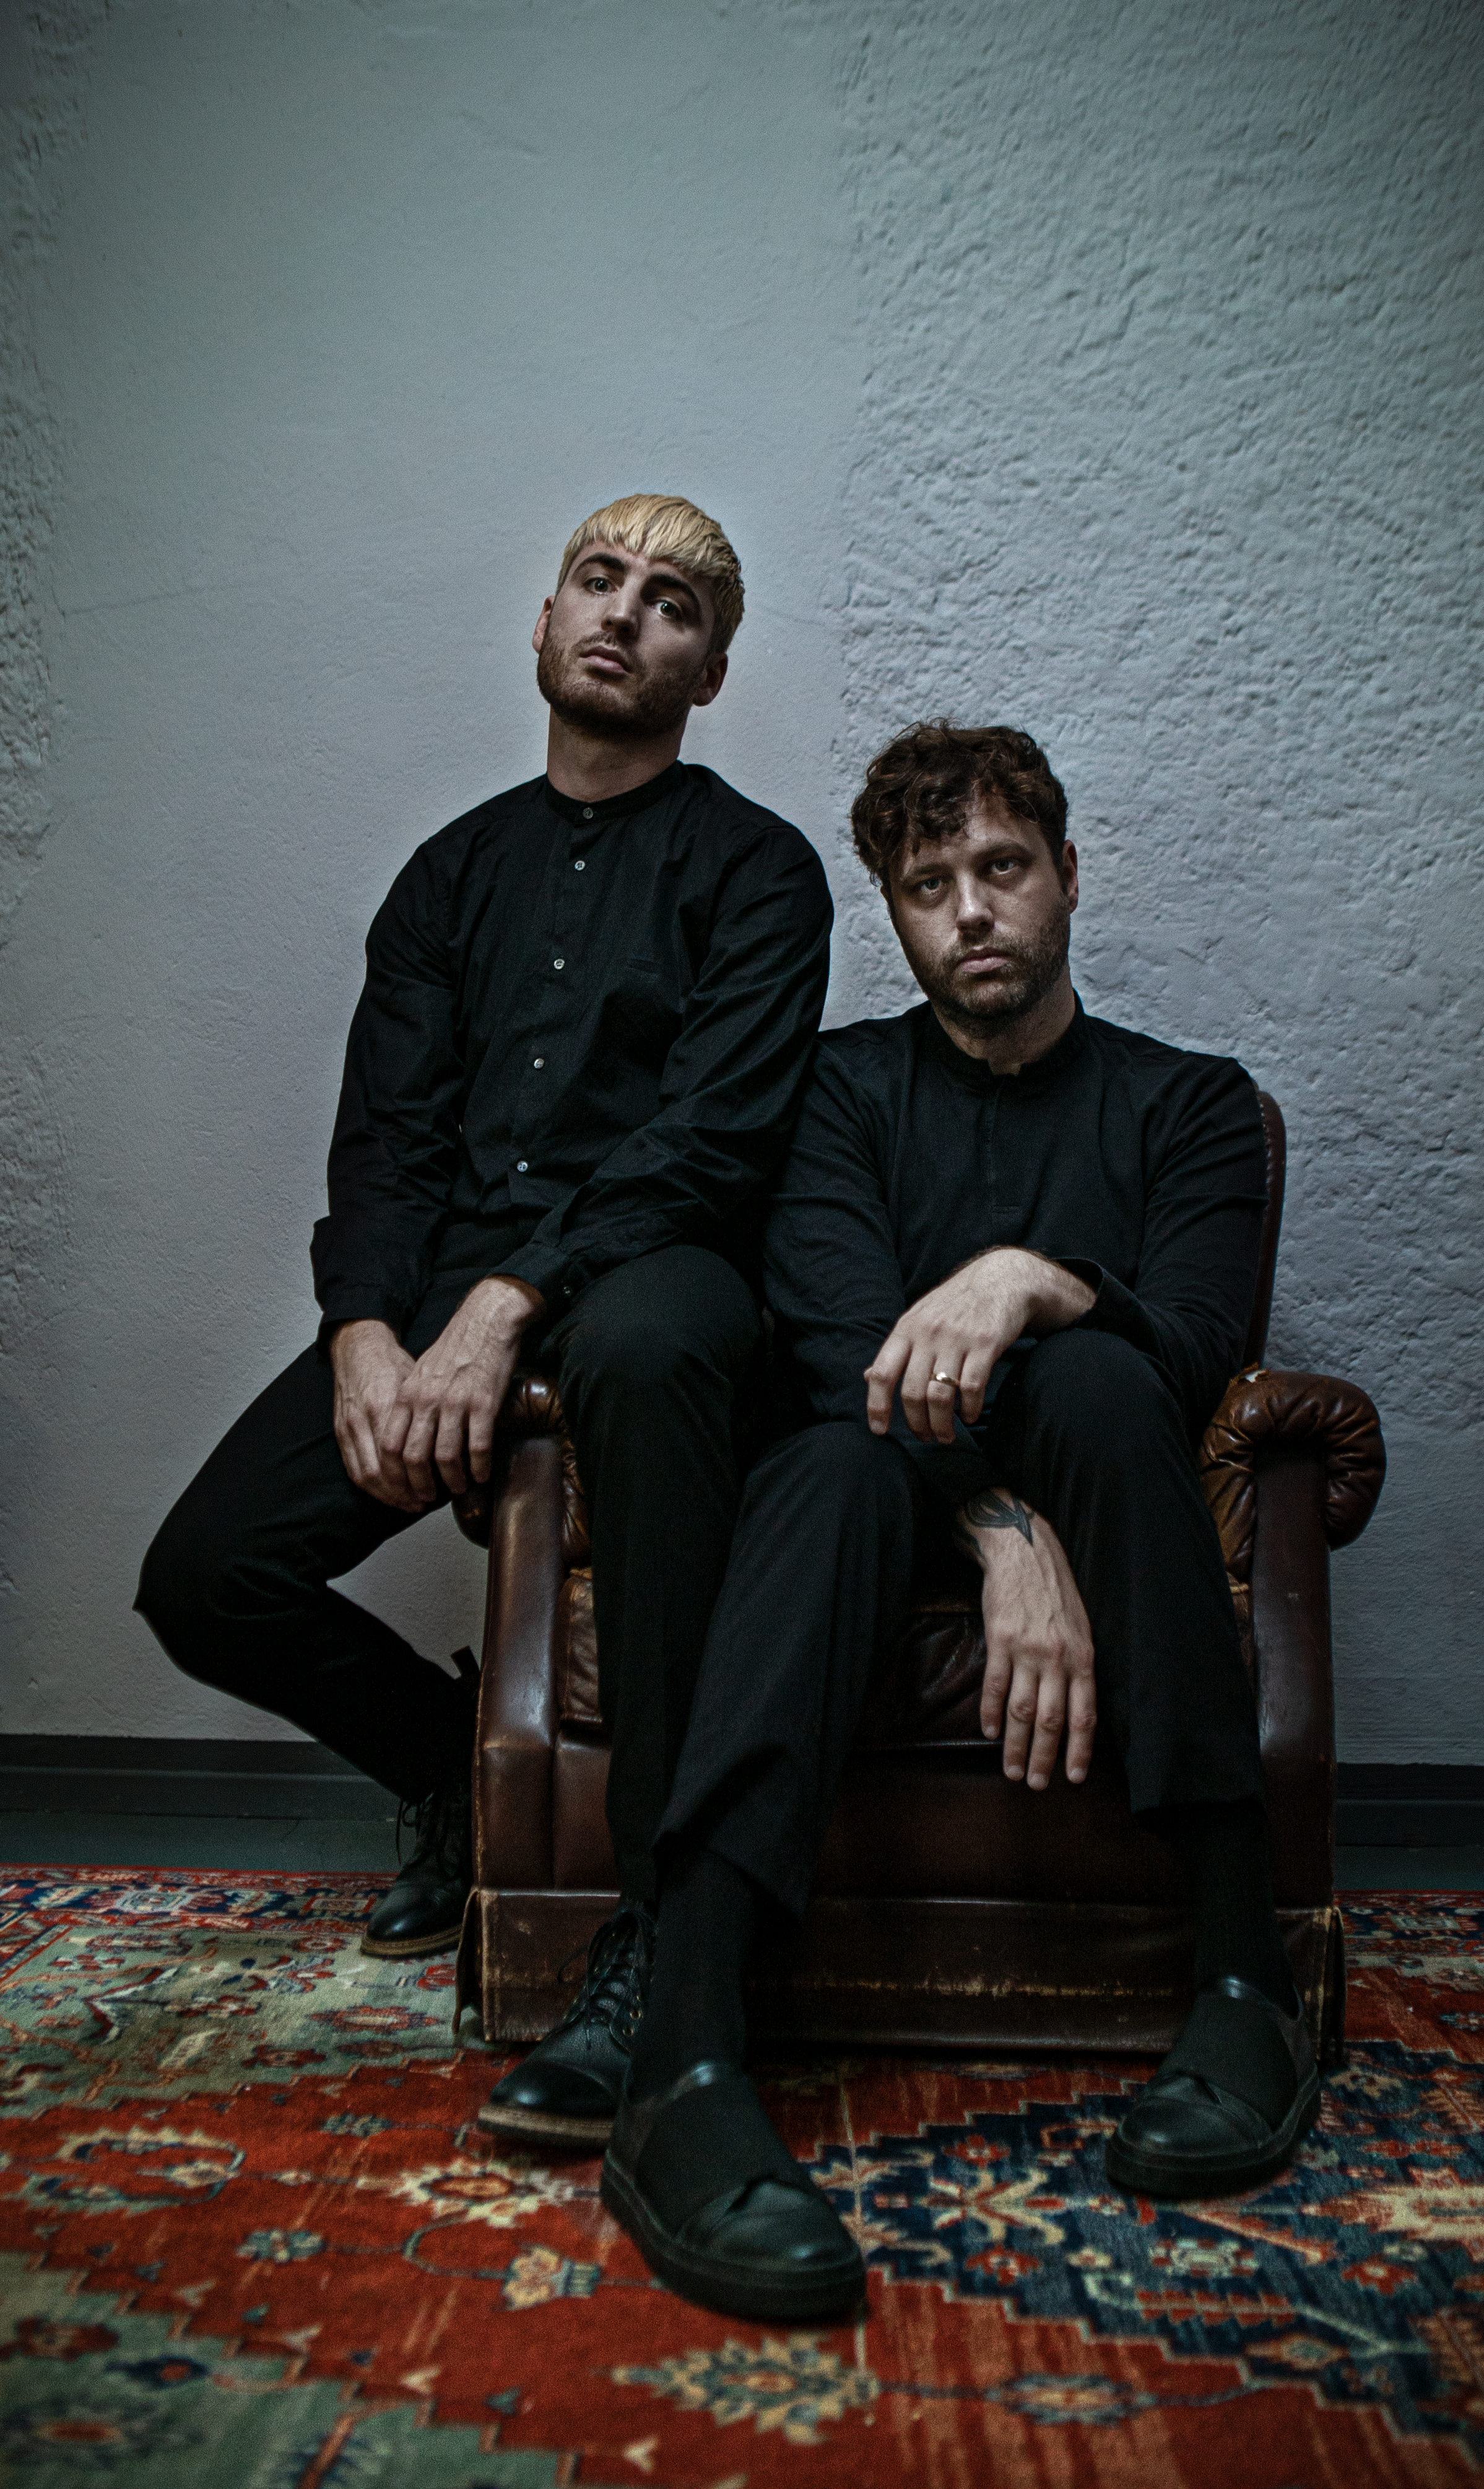 """Hear Just-Released New Track """"Nevermind"""" from Dark Powerhouse Post-Punk Band Crying Vessel, New Album 'Before Life Was Death' Coming May 2022"""